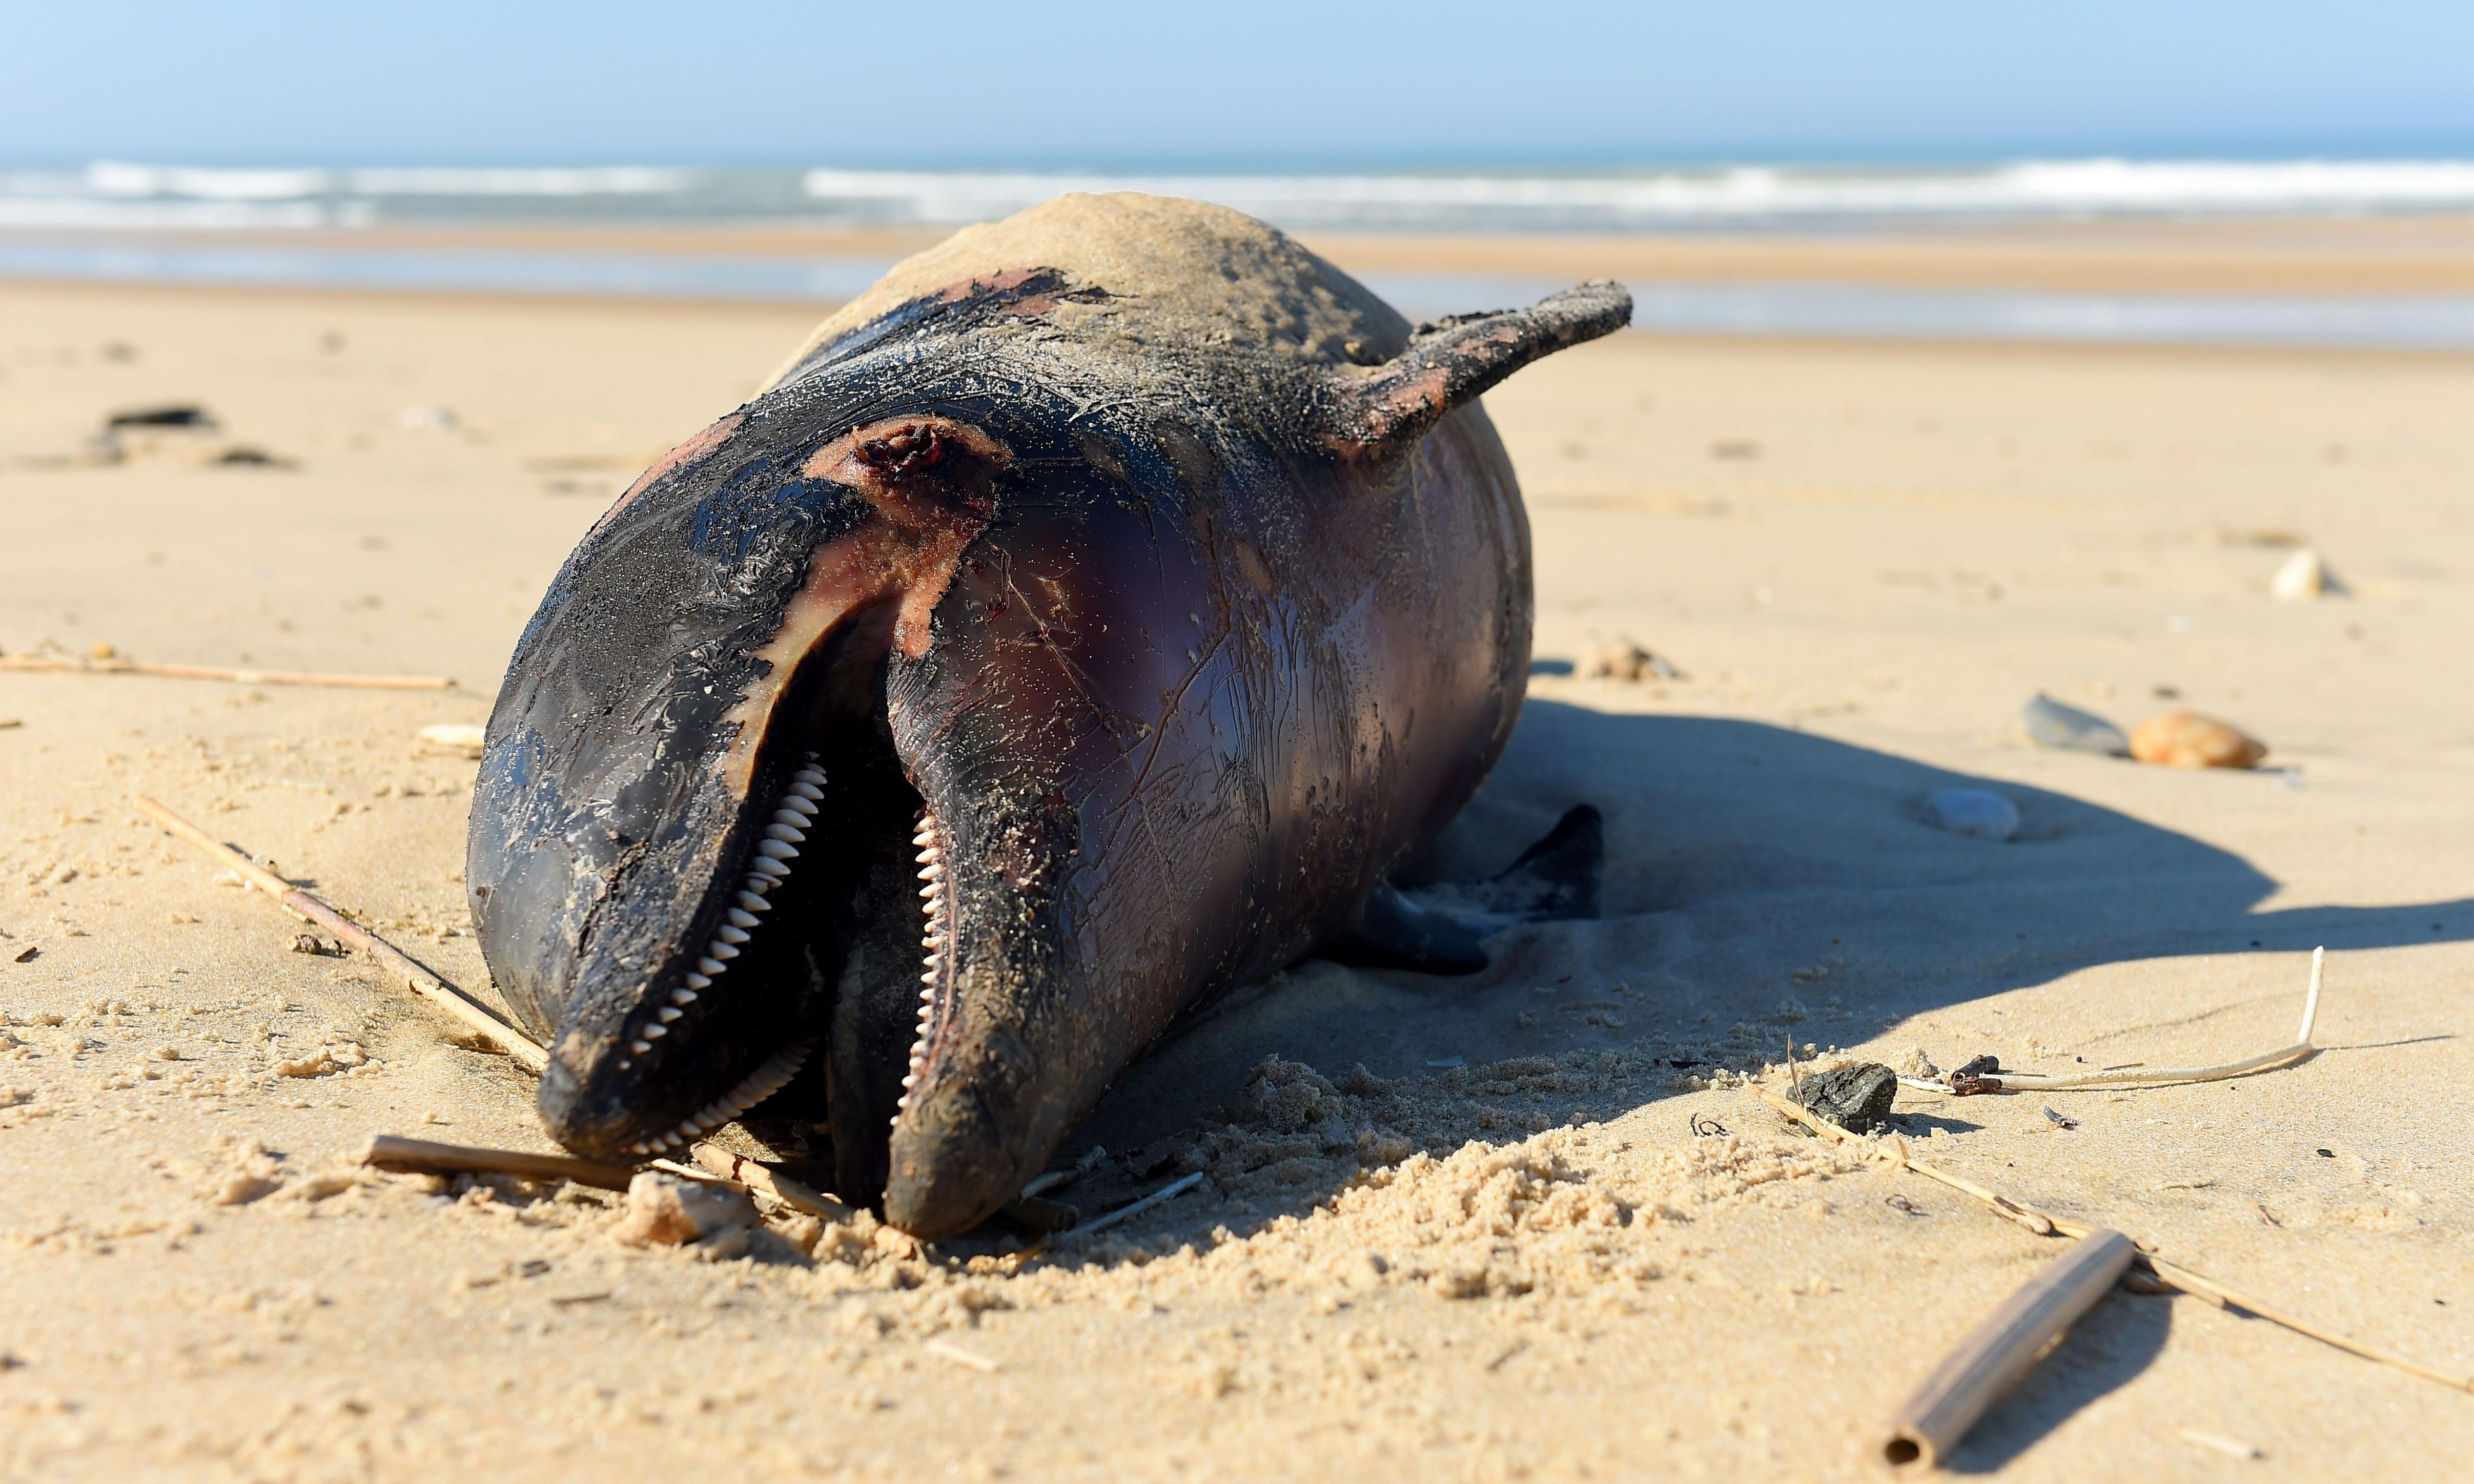 Mutilated dolphins wash up on French coast in record numbers